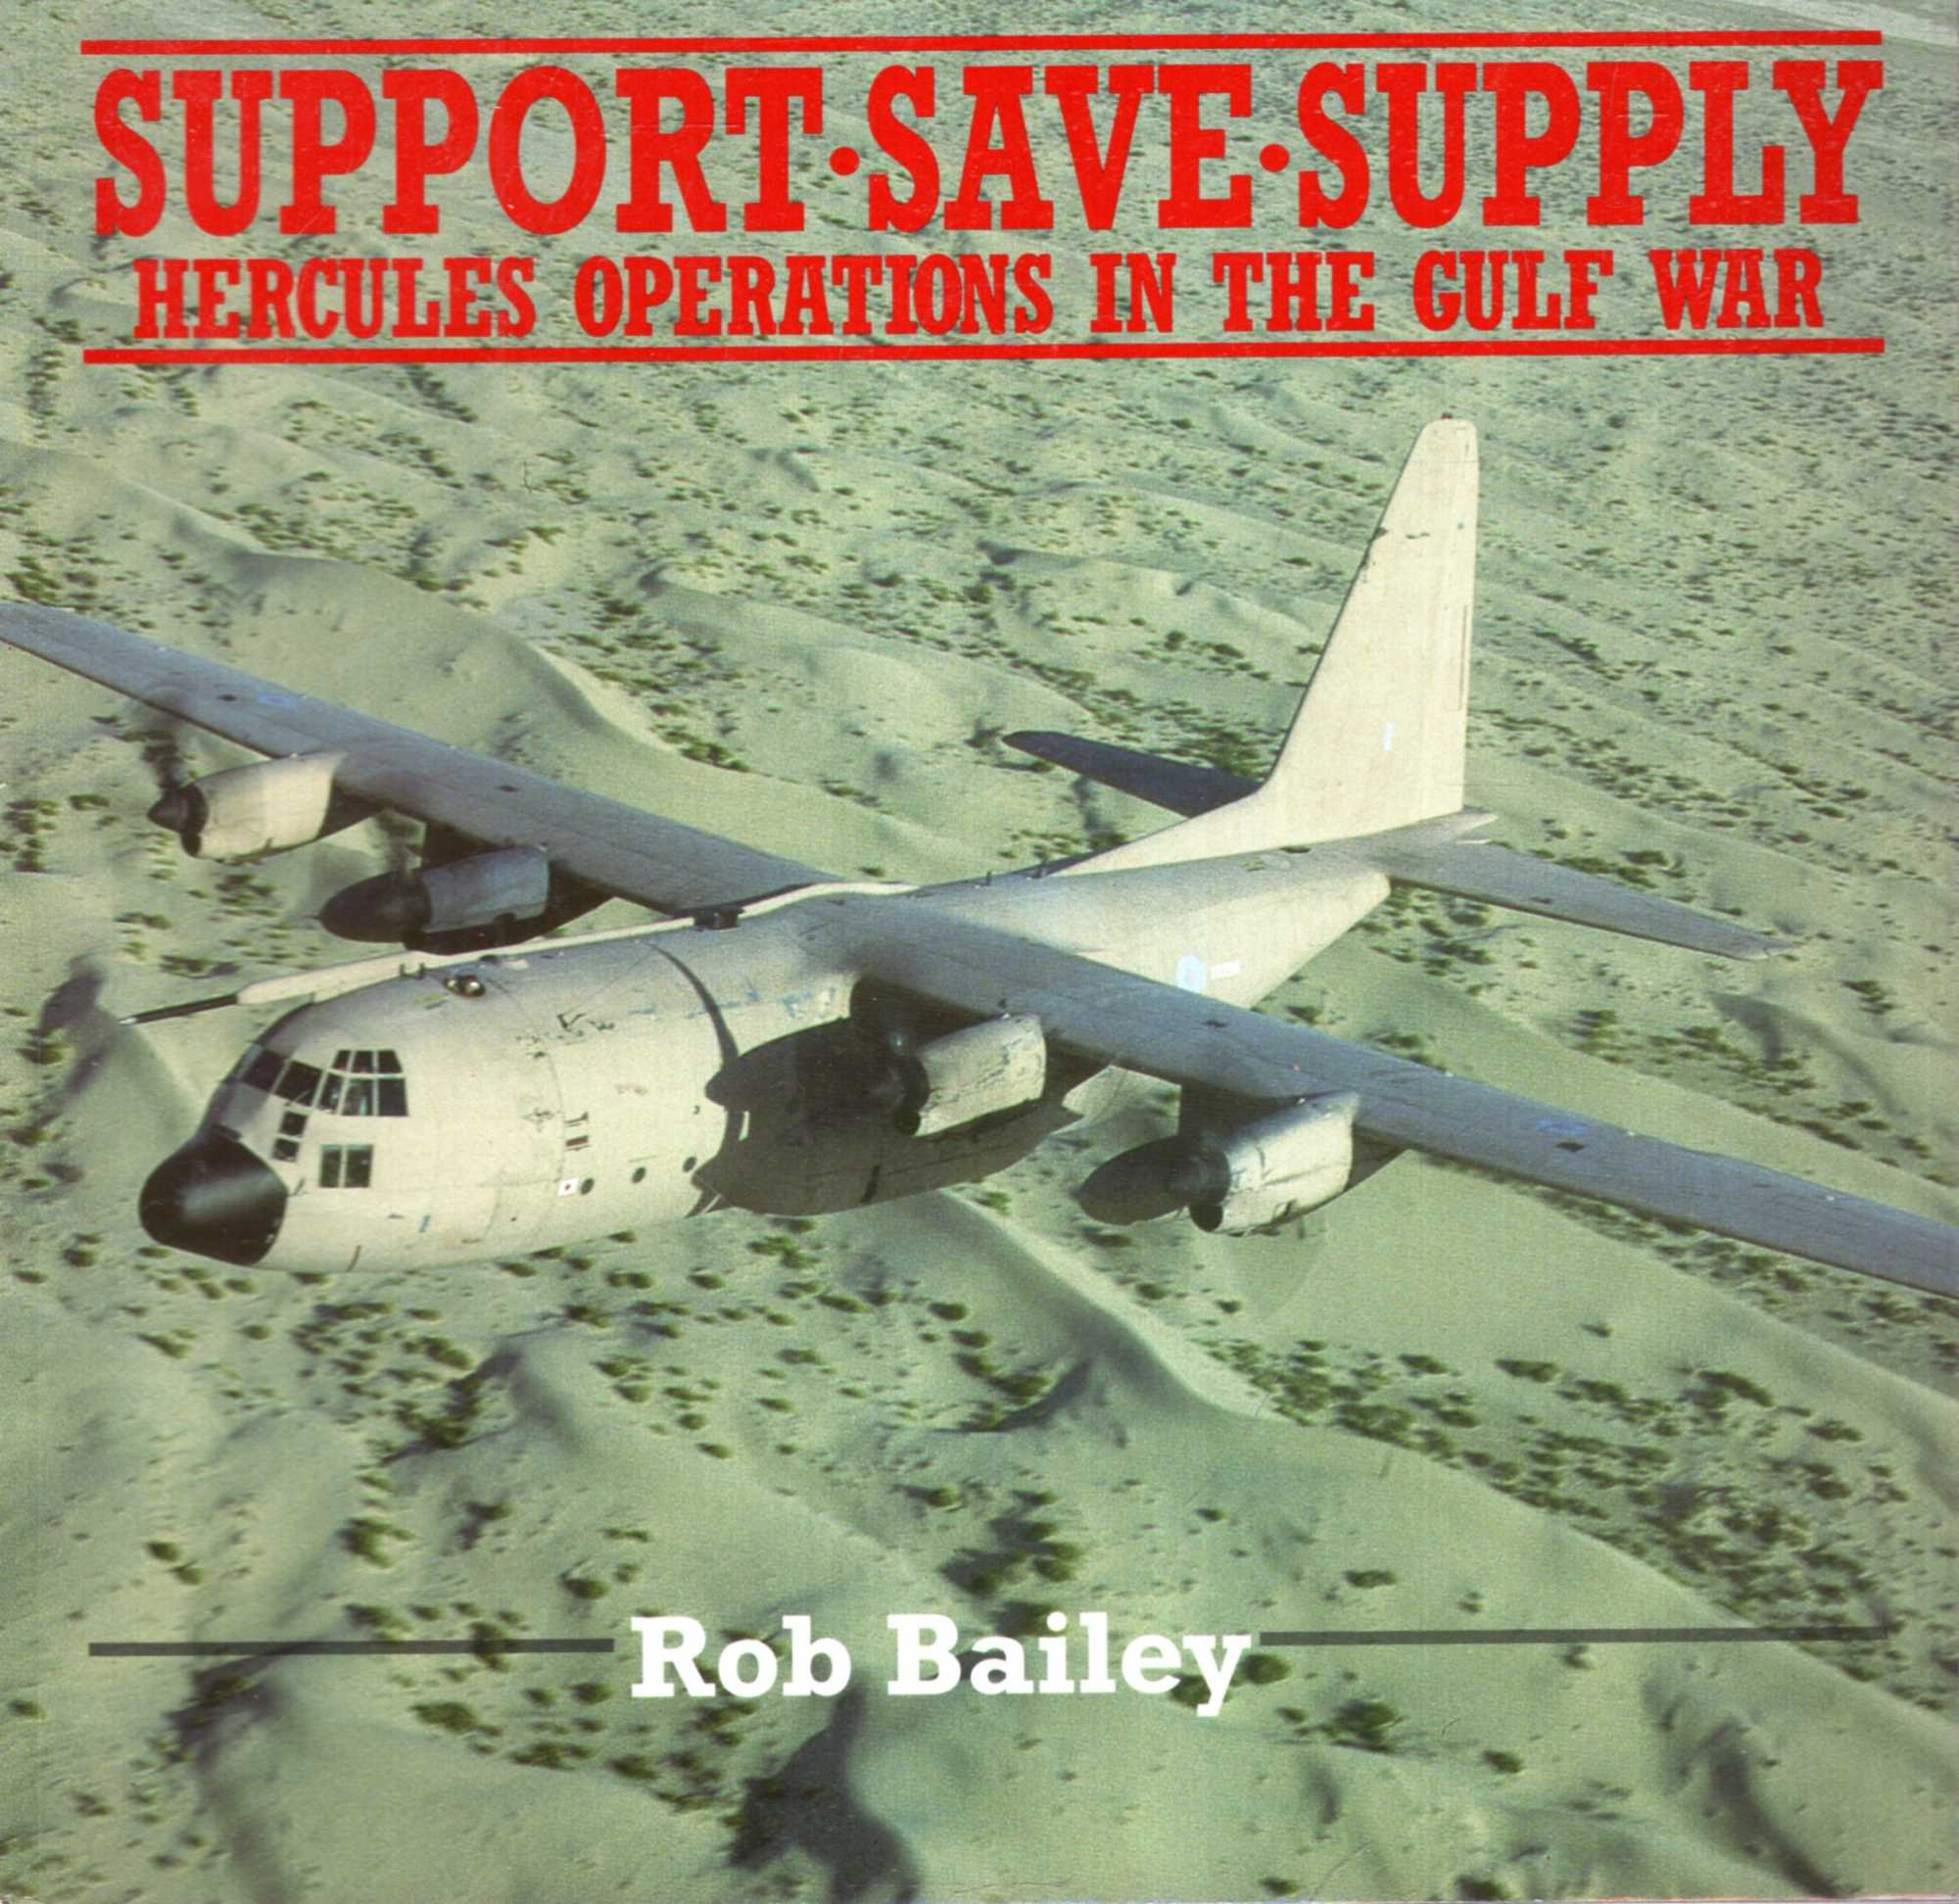 Image for Support - Save - Supply - Hercules Operations in the Gulf War